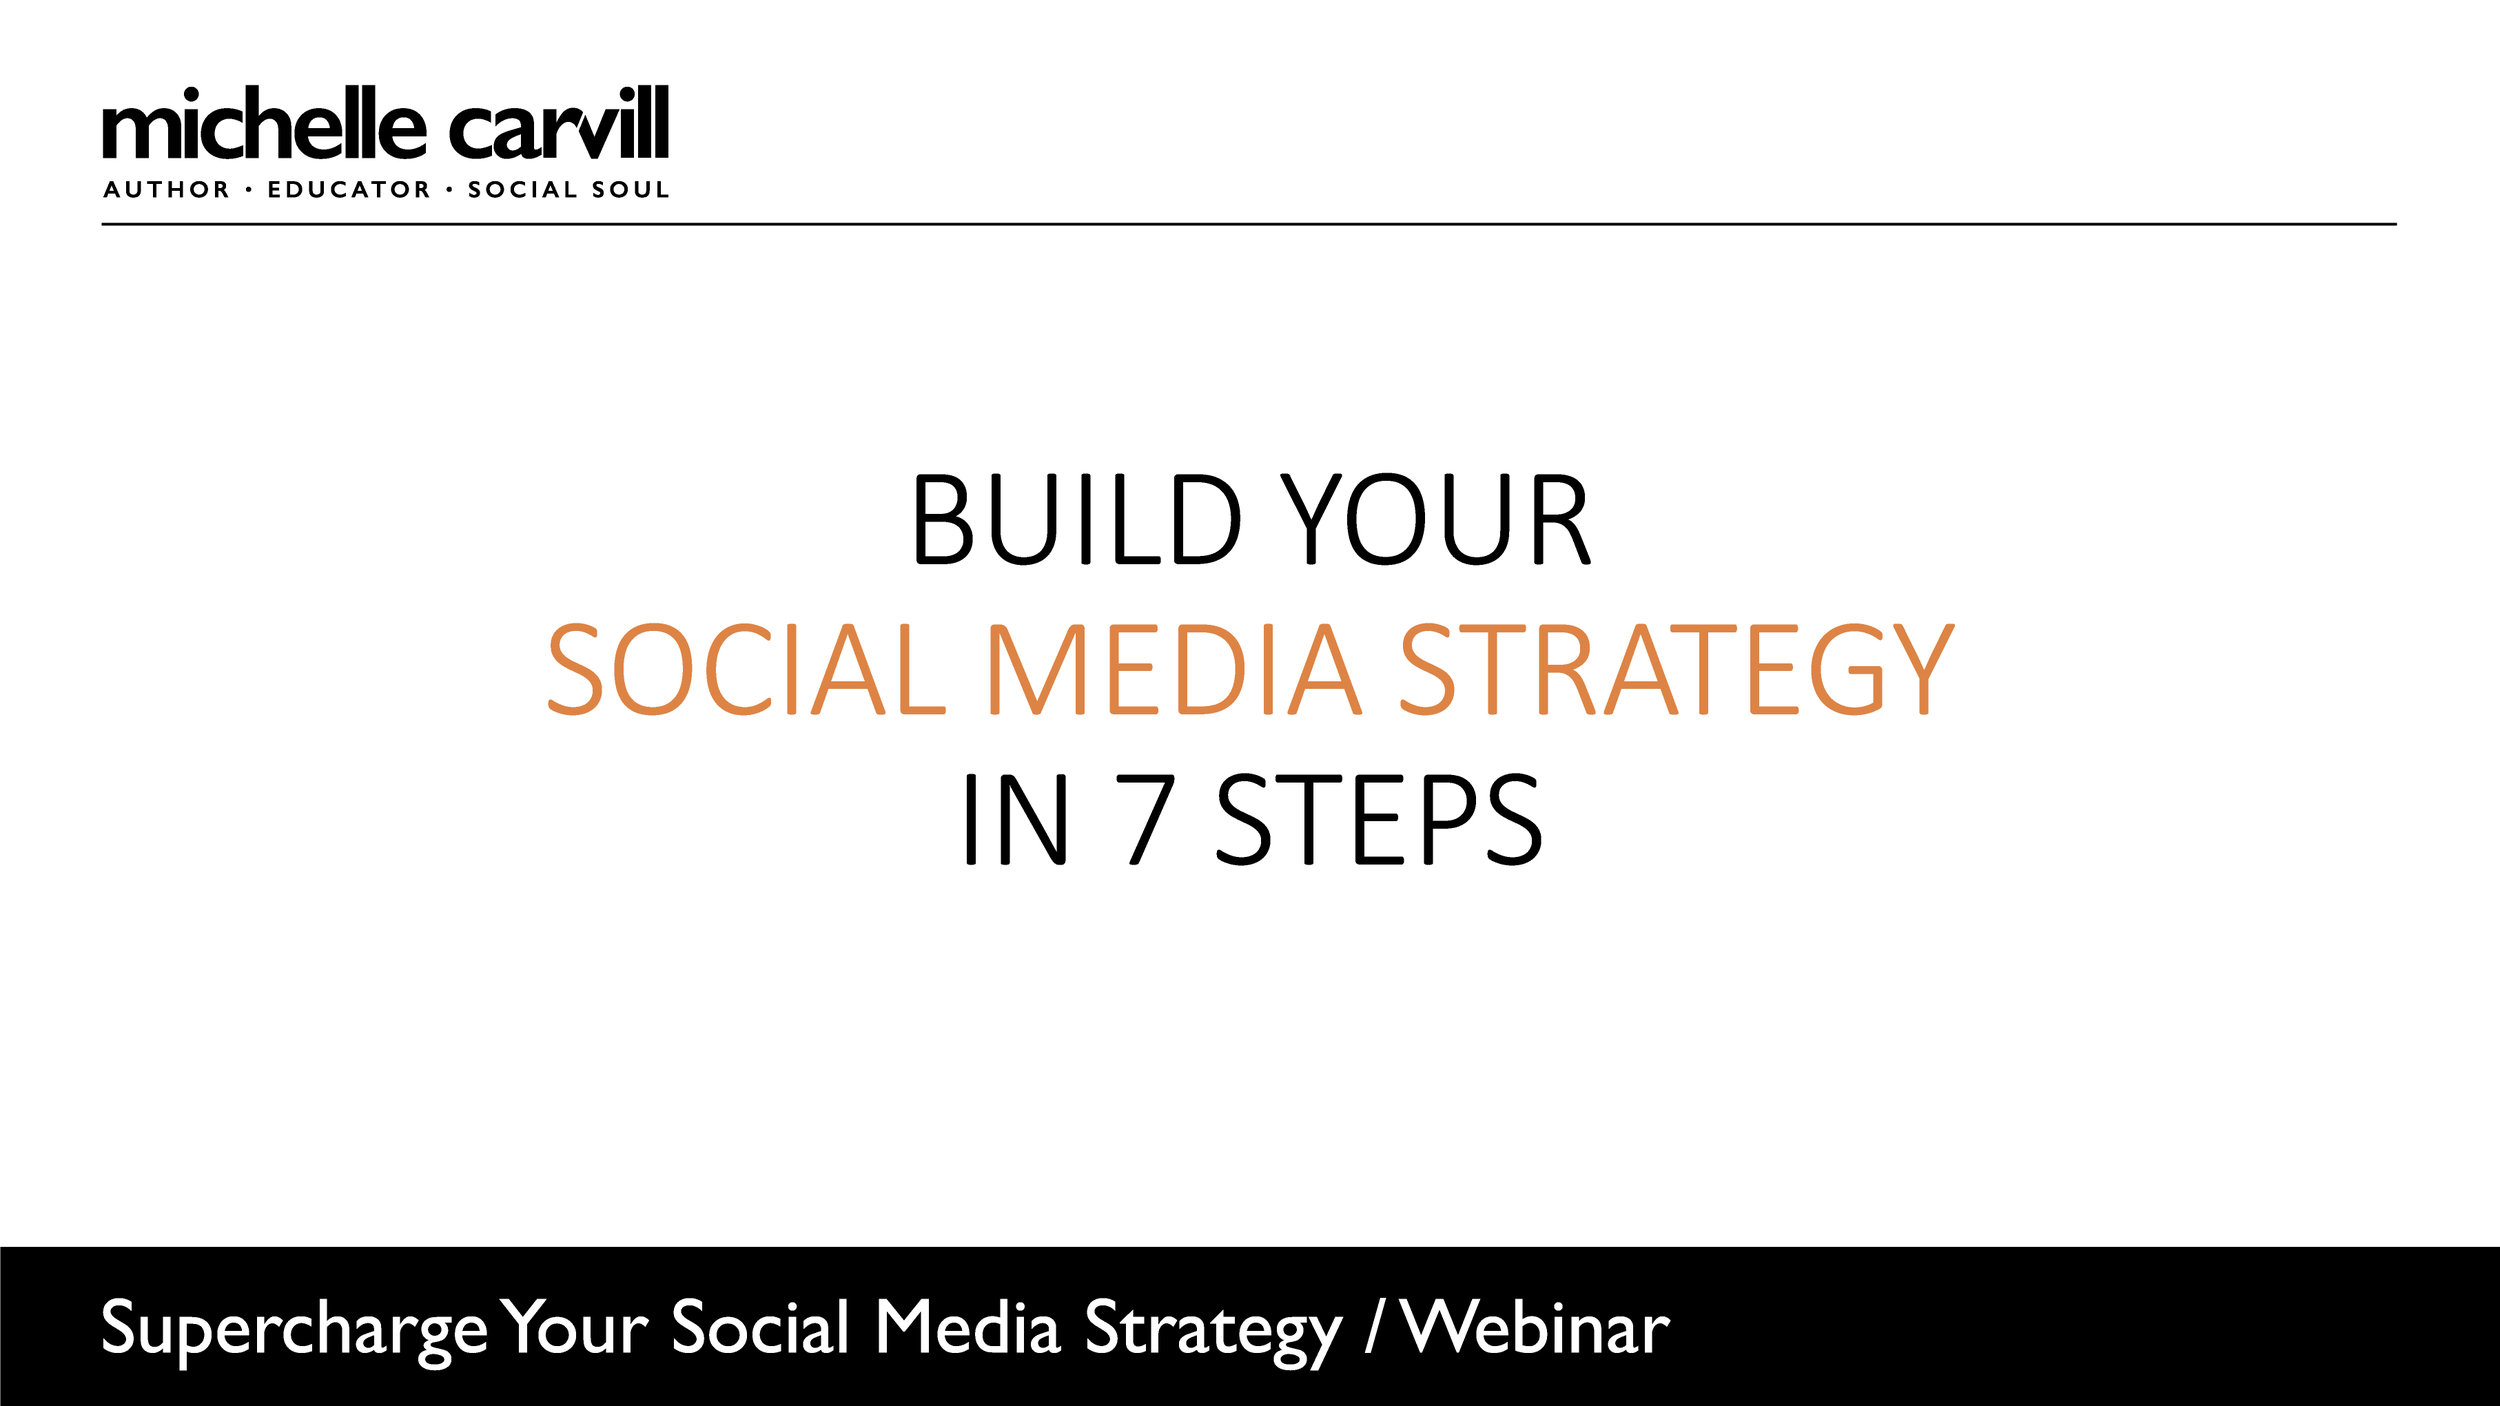 michelle-carvill-opening-title-page-for-webinar.jpg